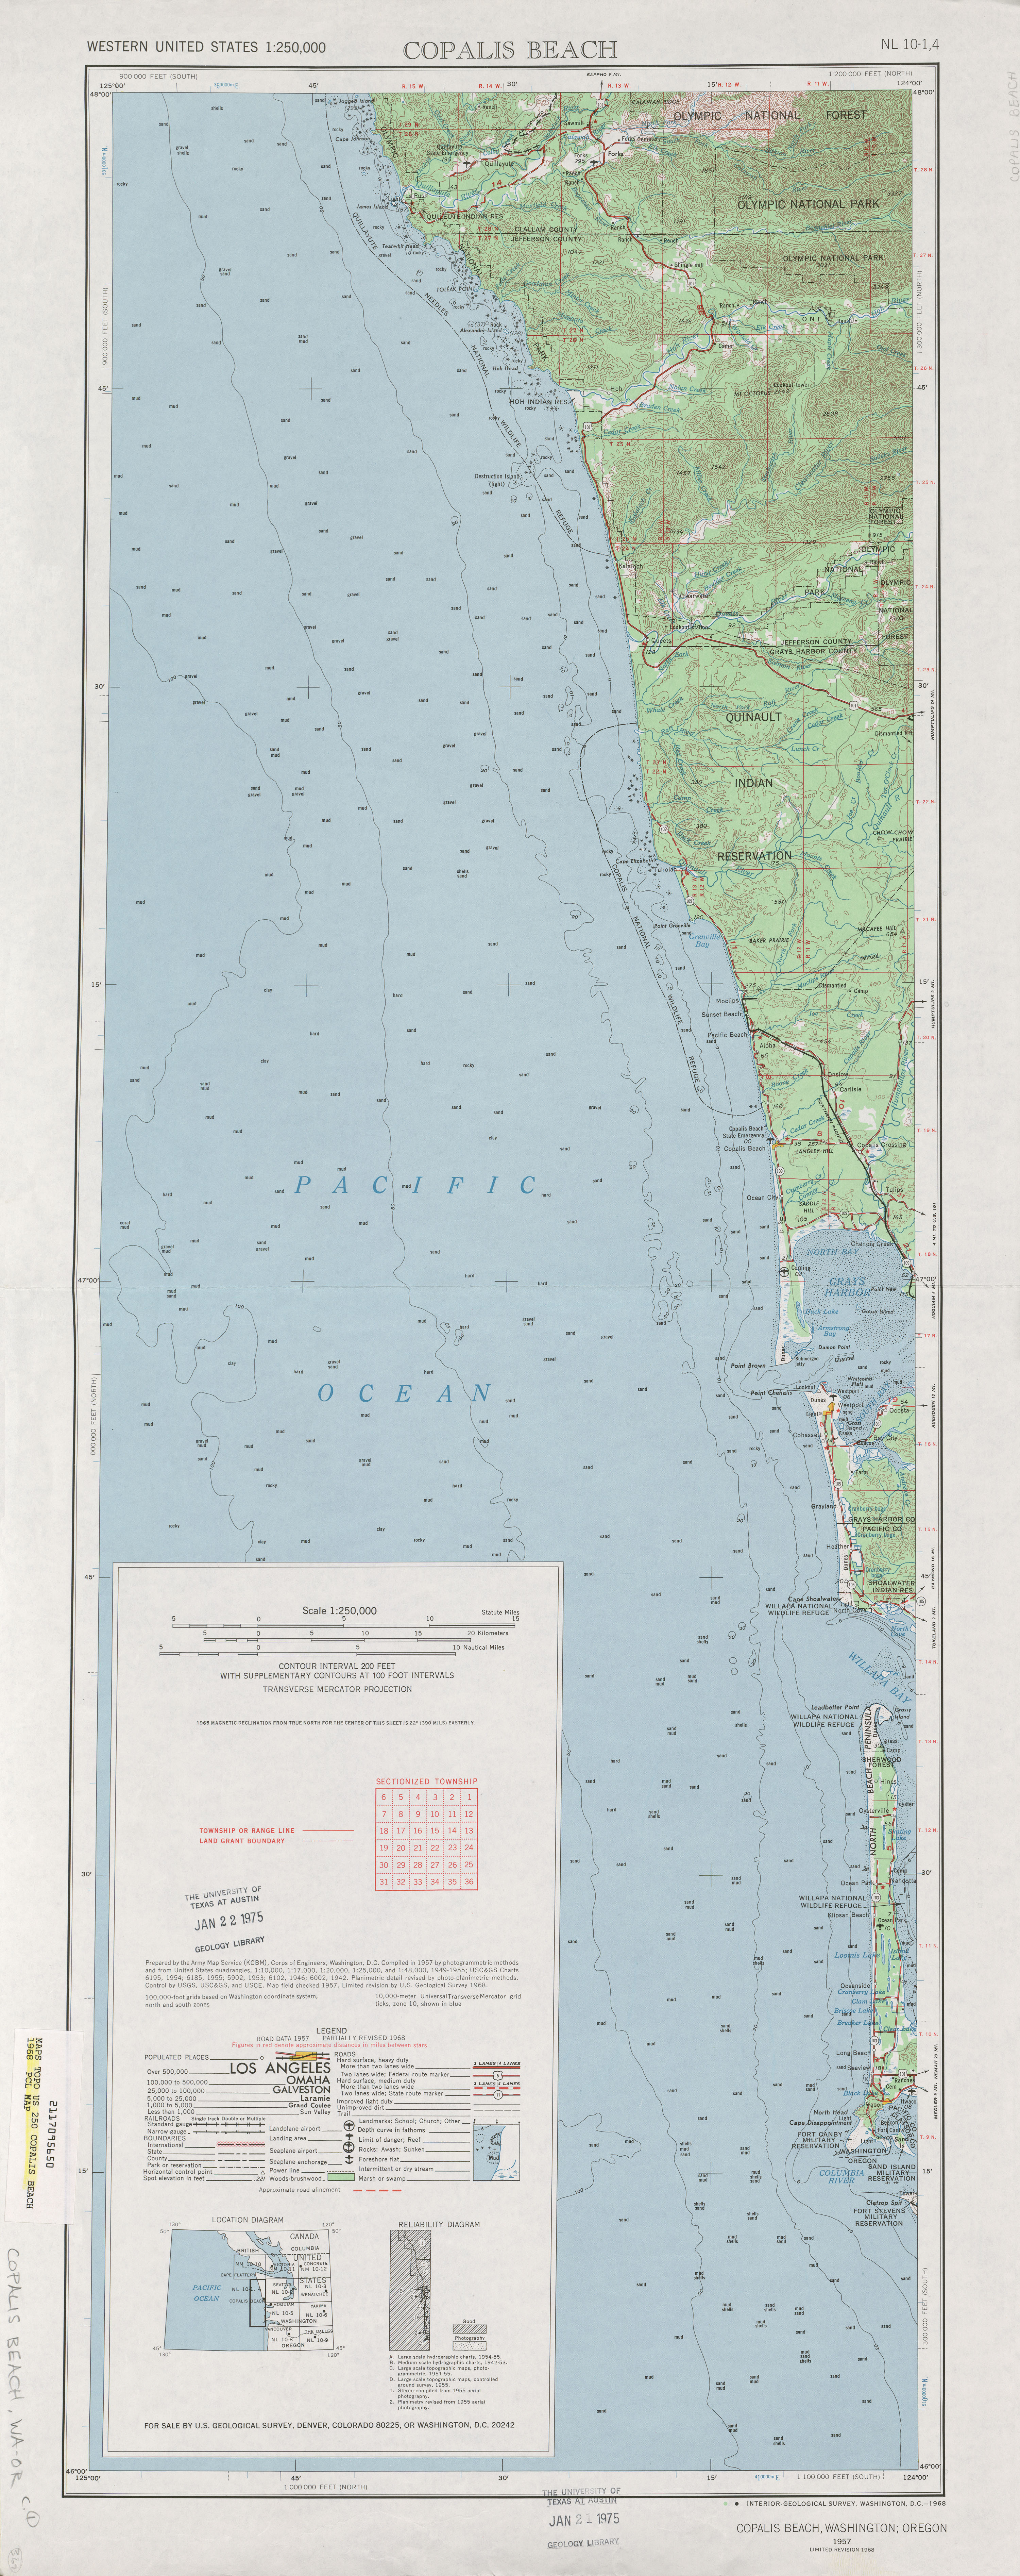 Copalis Beach Topographic Map Sheet, United States 1968